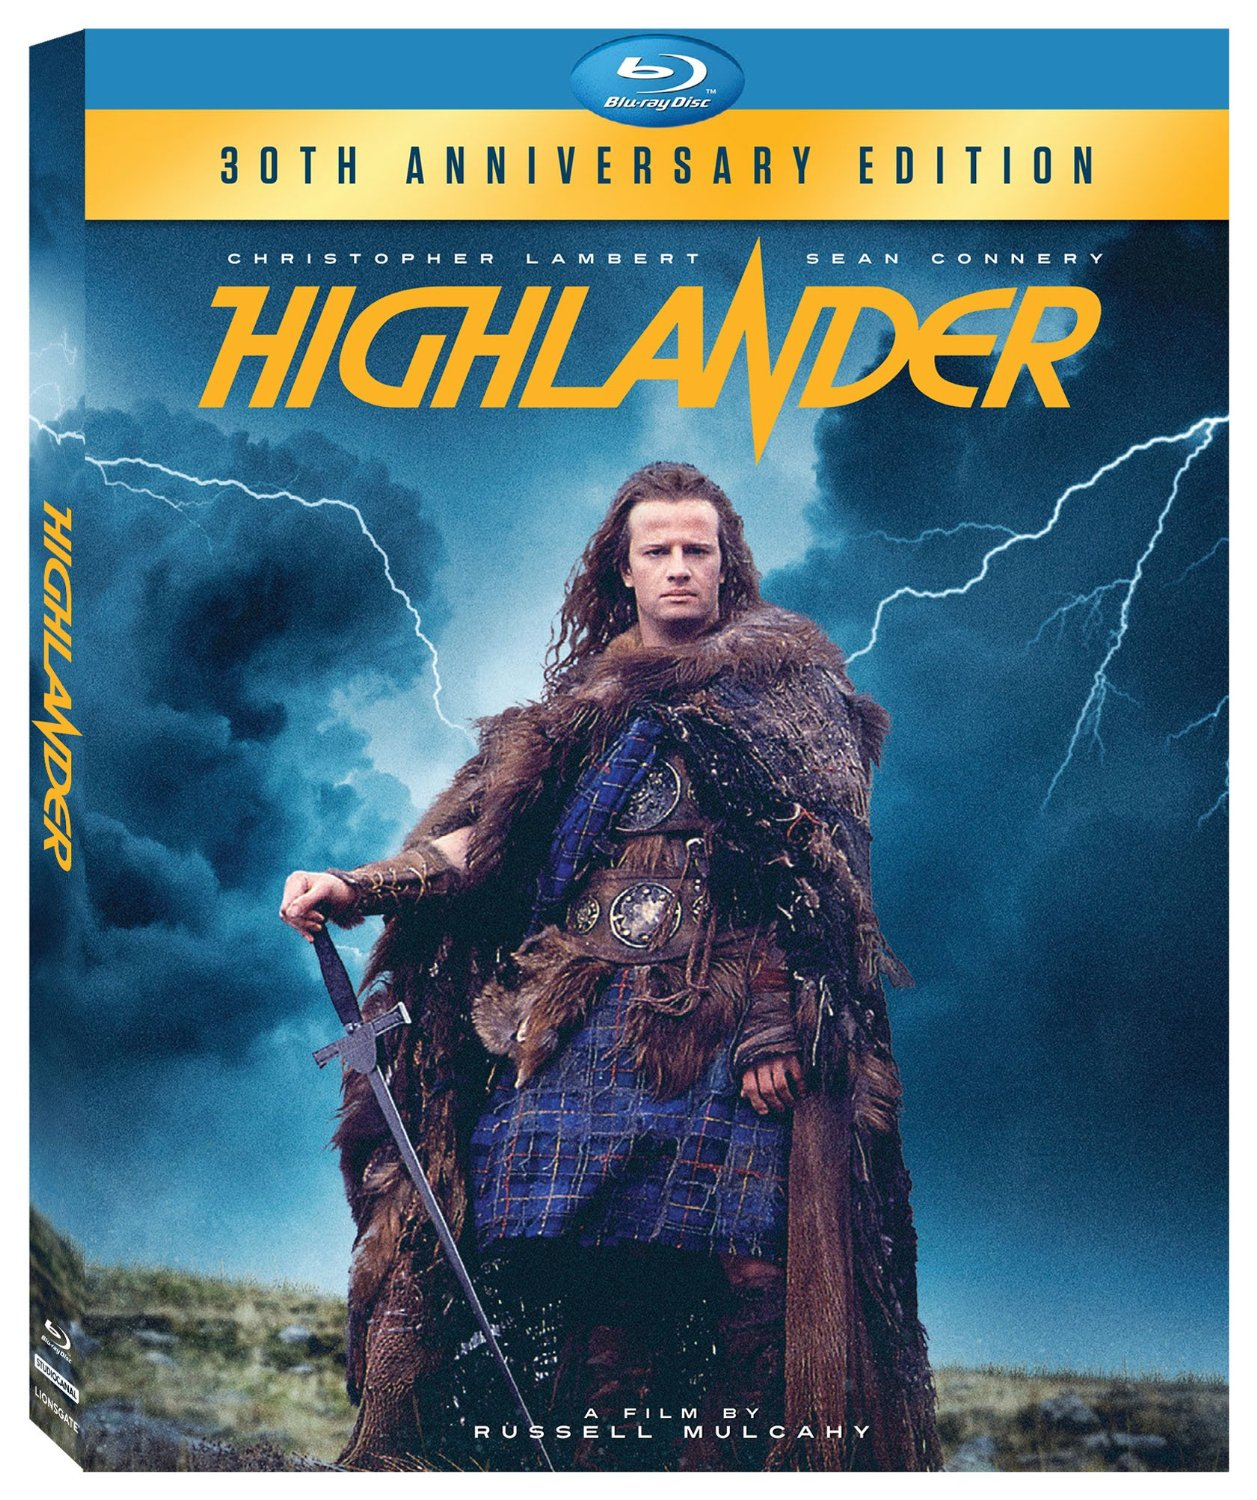 Highlander [Movie] - Highlander: 30th Anniversary